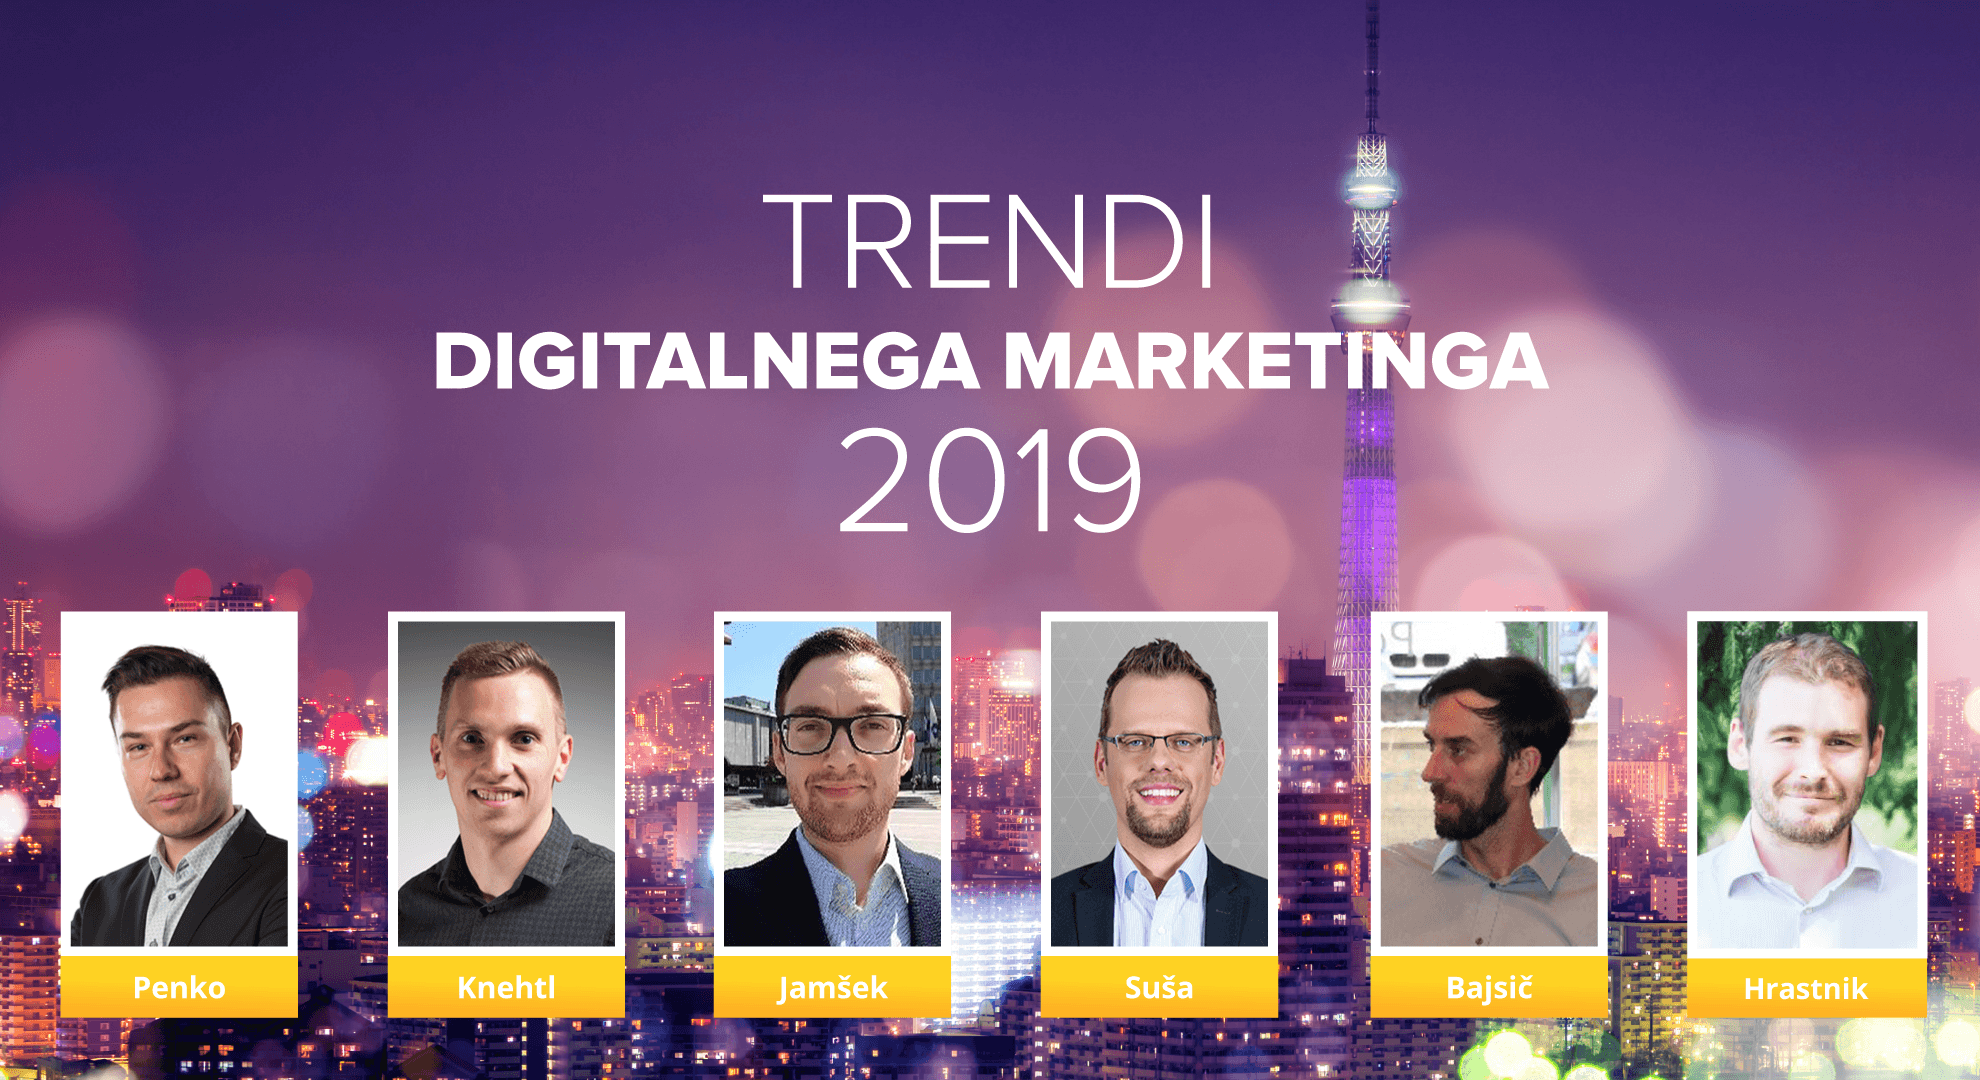 Predavatelji na dogodku Trendi digitalnega marketinga 2019